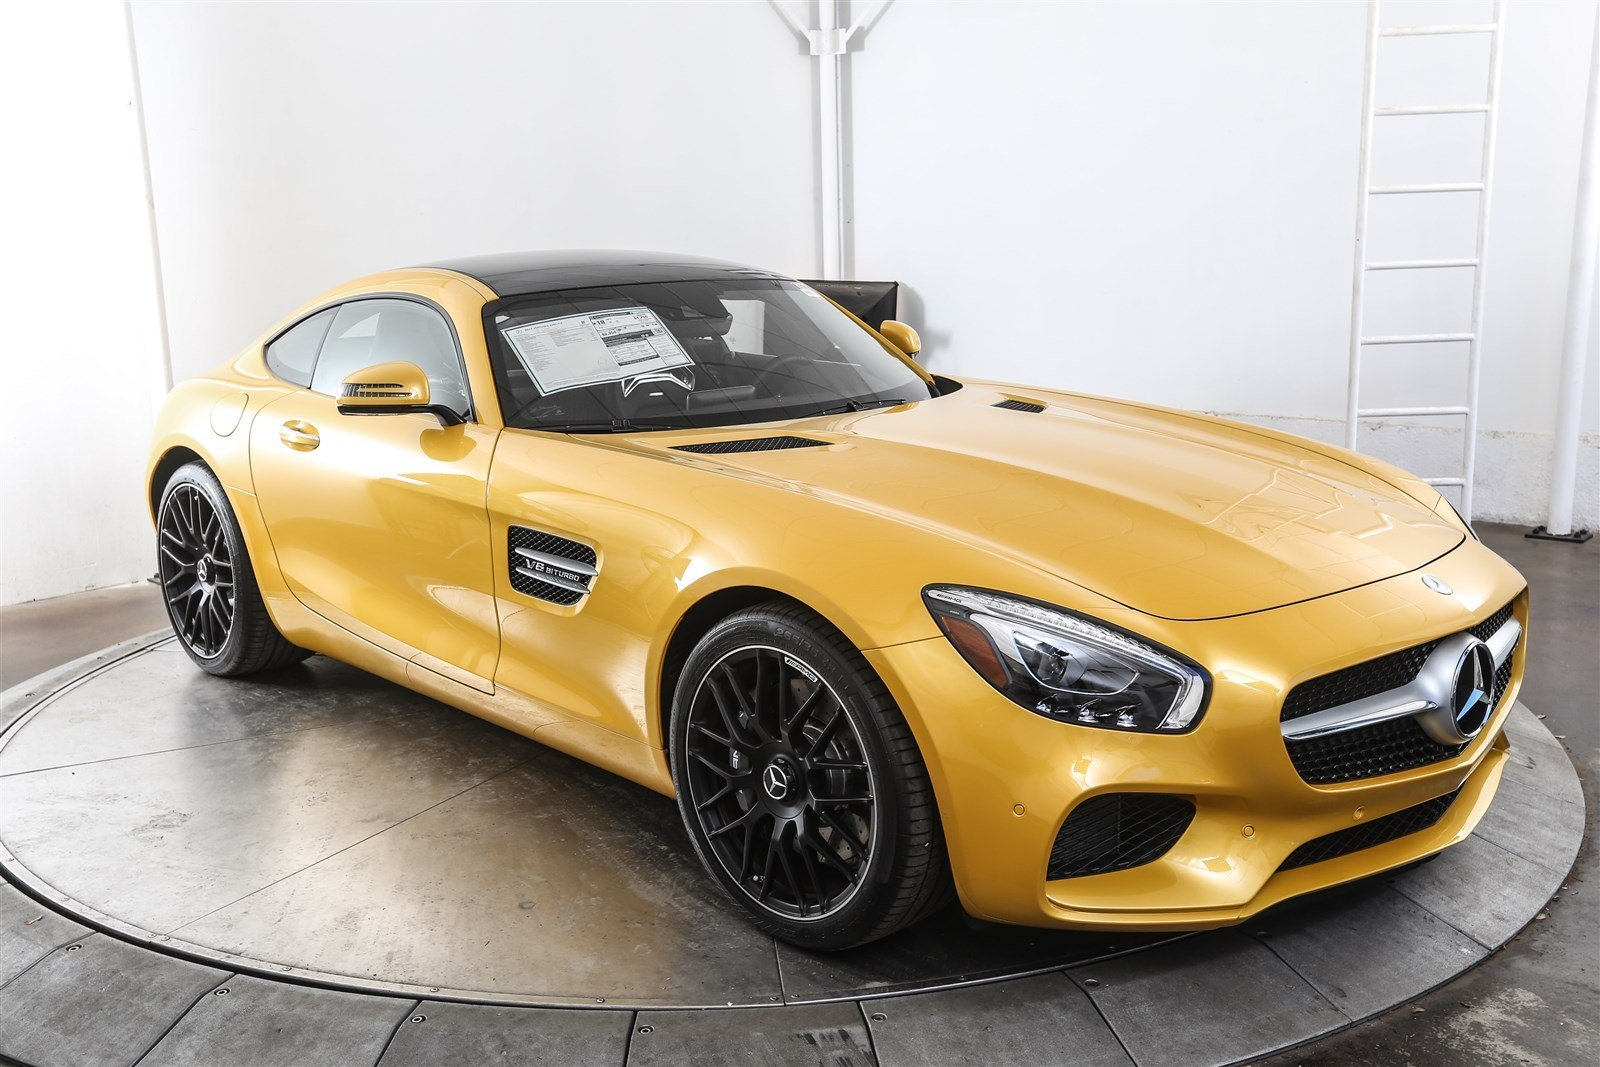 New 2017 mercedes benz amg gt coupe in austin m26222 for 2017 mercedes benz amg gt msrp